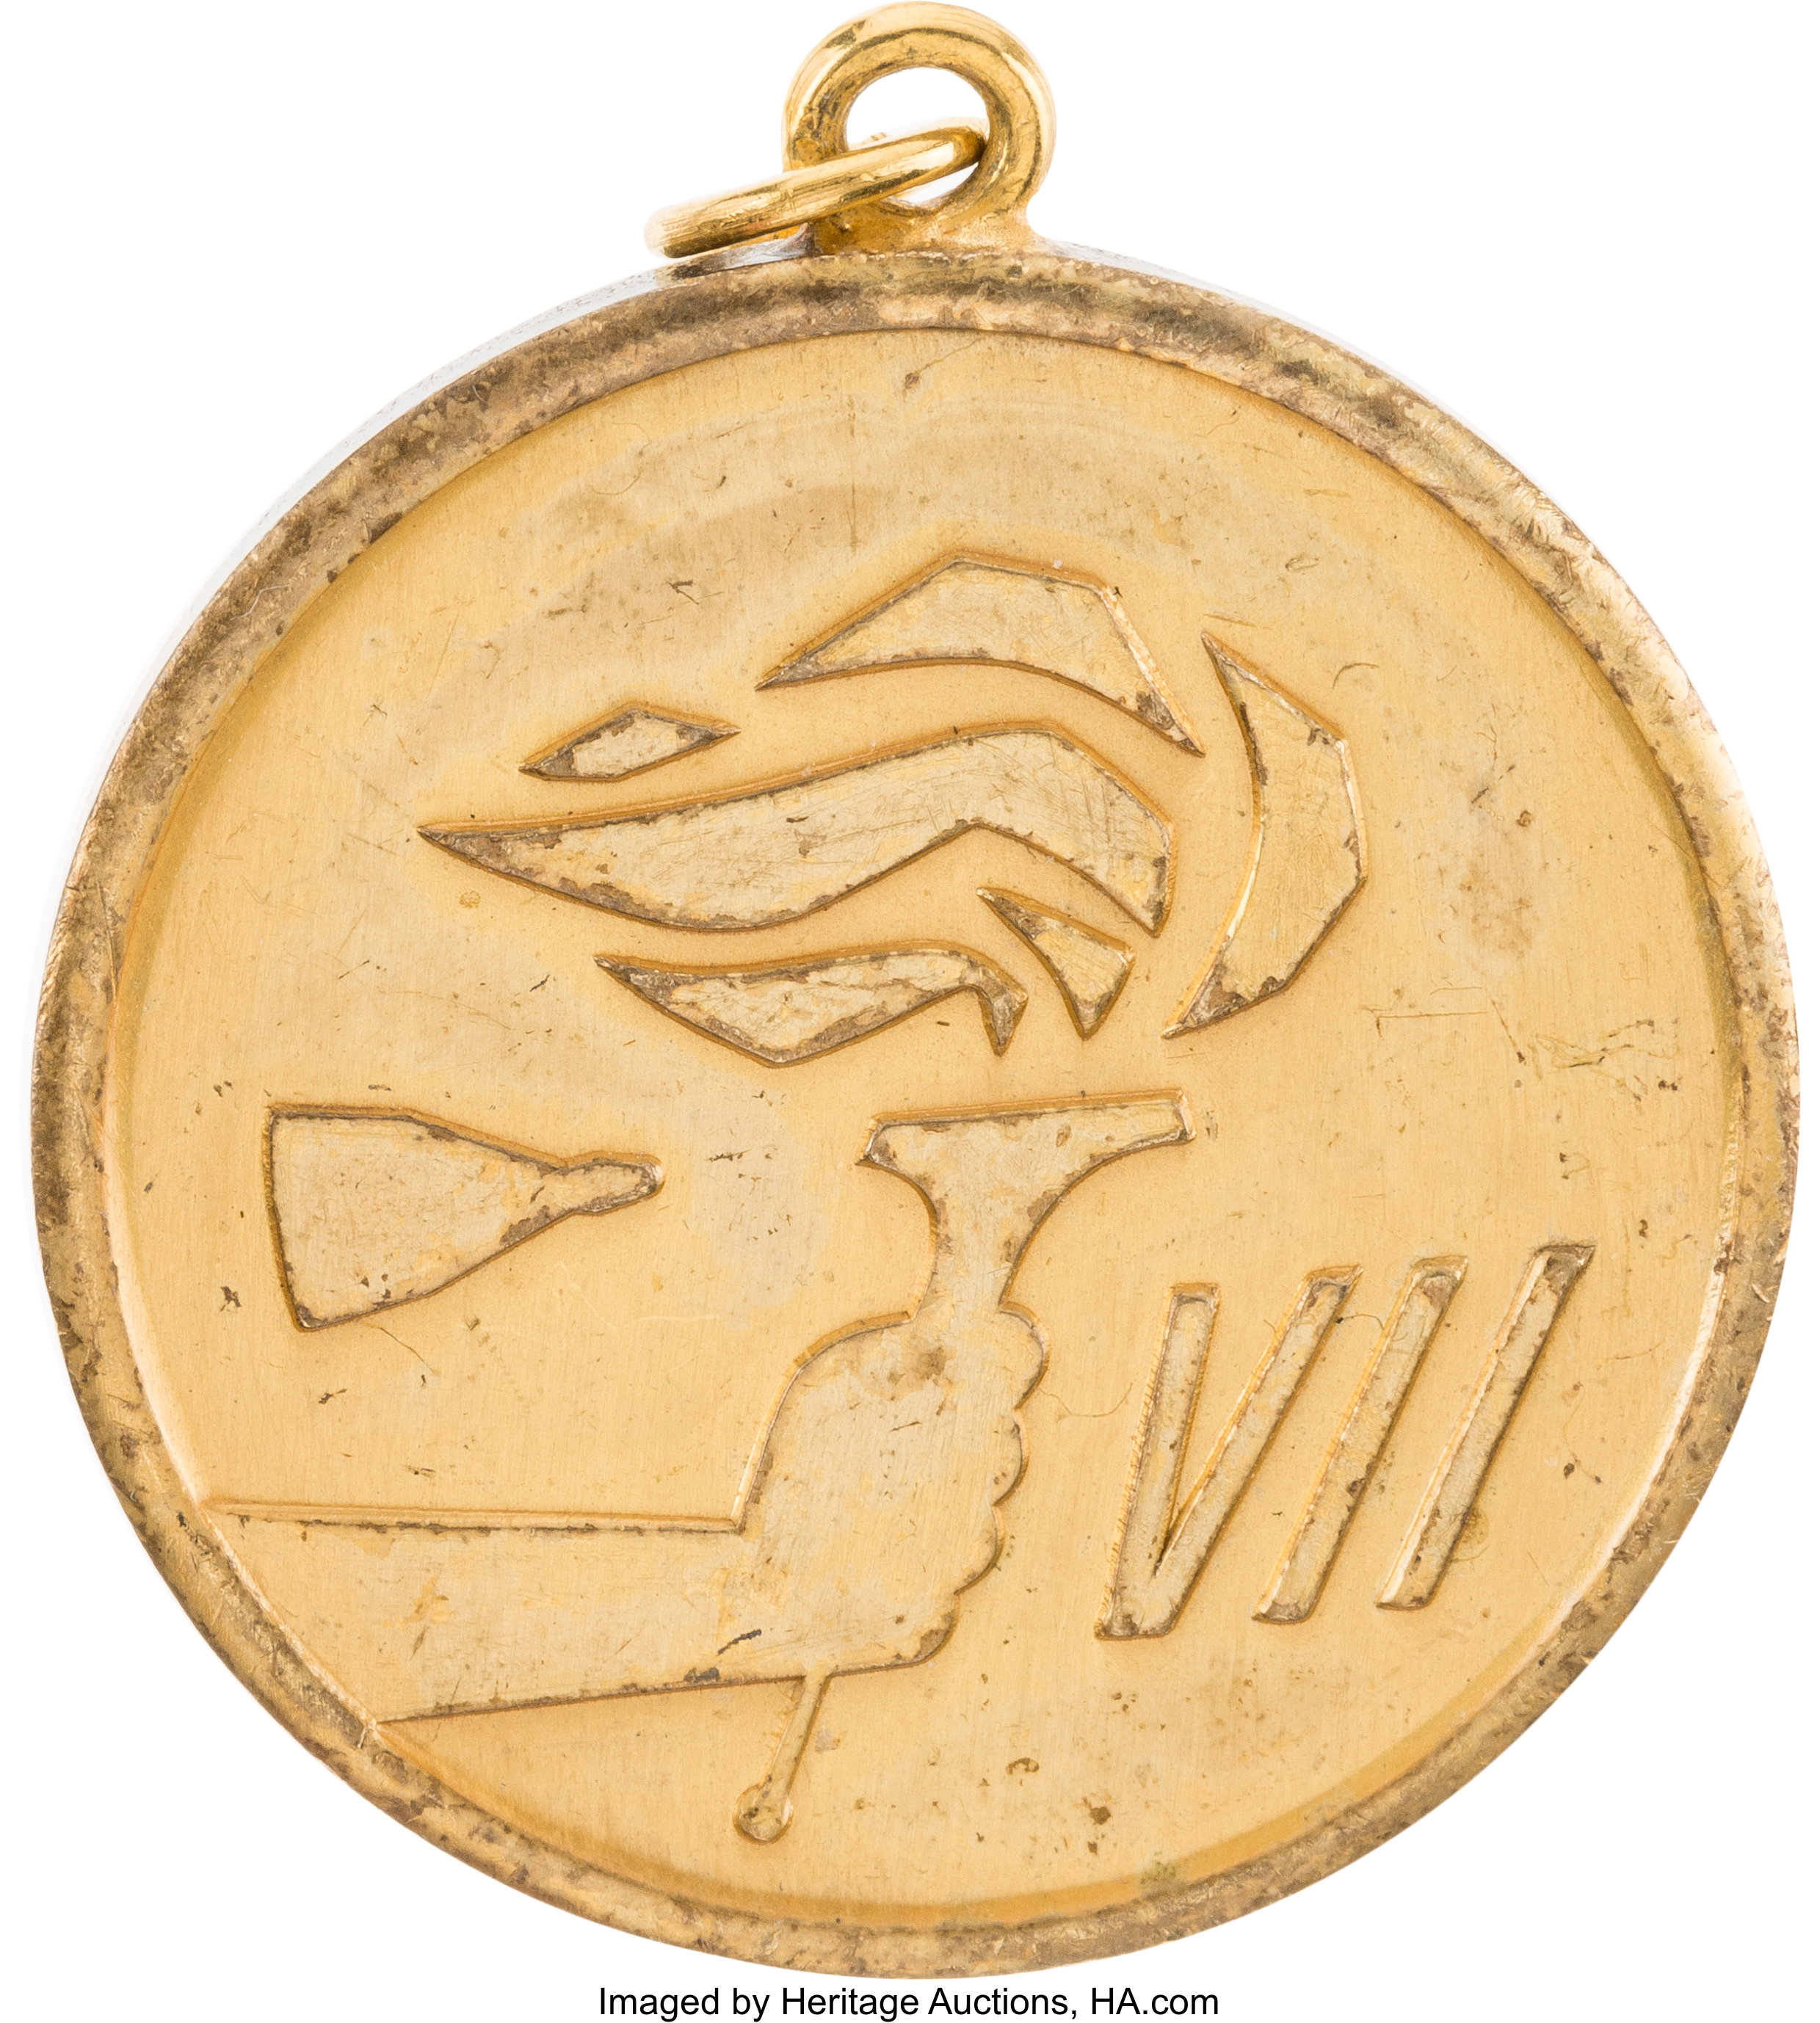 Gemini 7 Flown Gold-Colored Fliteline Medallion Originally from the Personal Collection of Astronaut Jerry Carr, with LOA